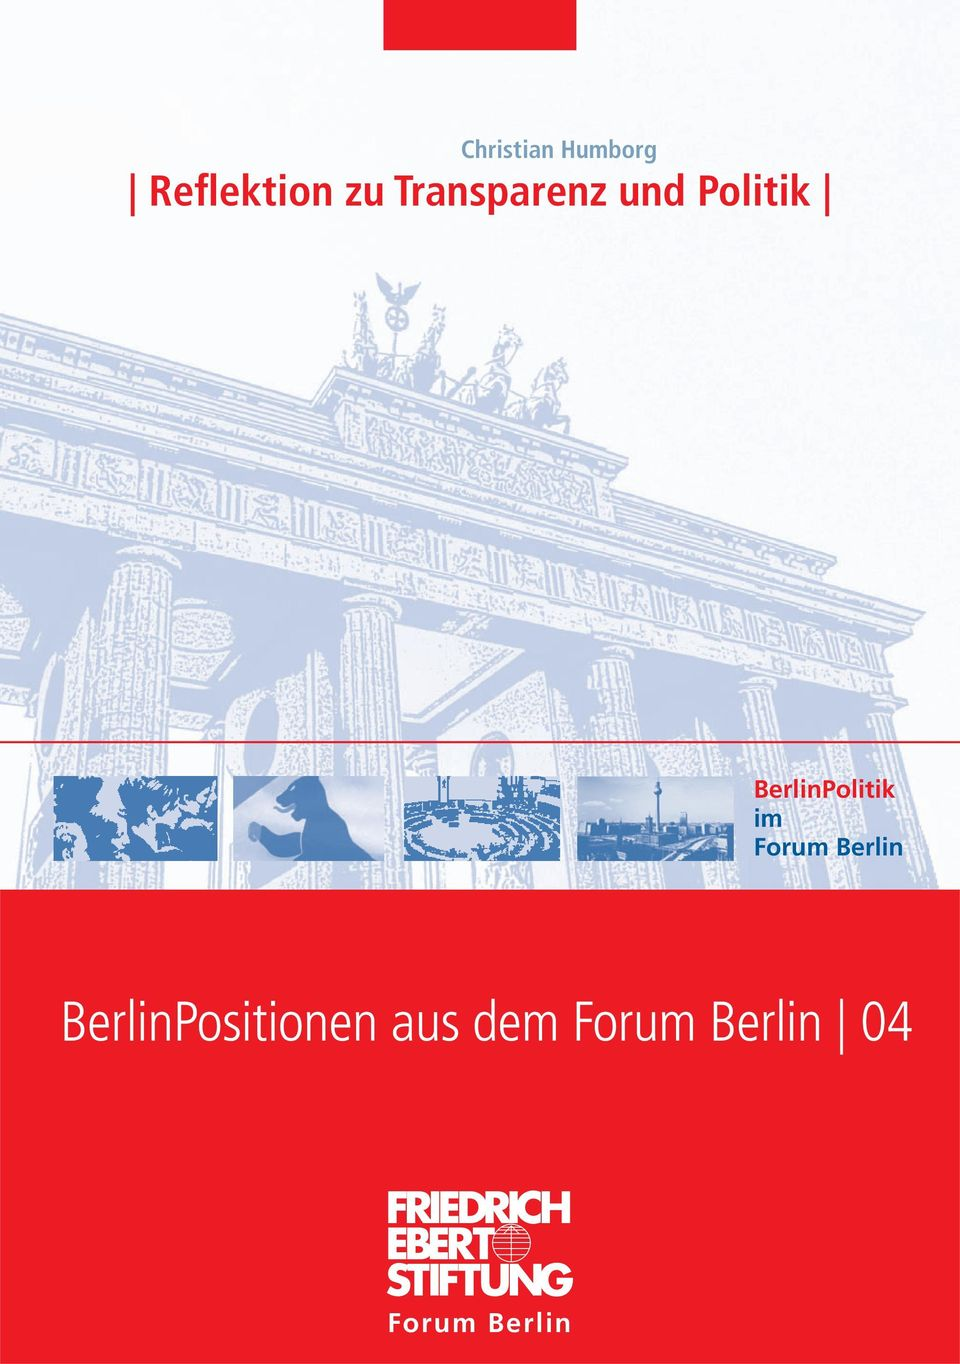 BerlinPolitik im Forum Berlin